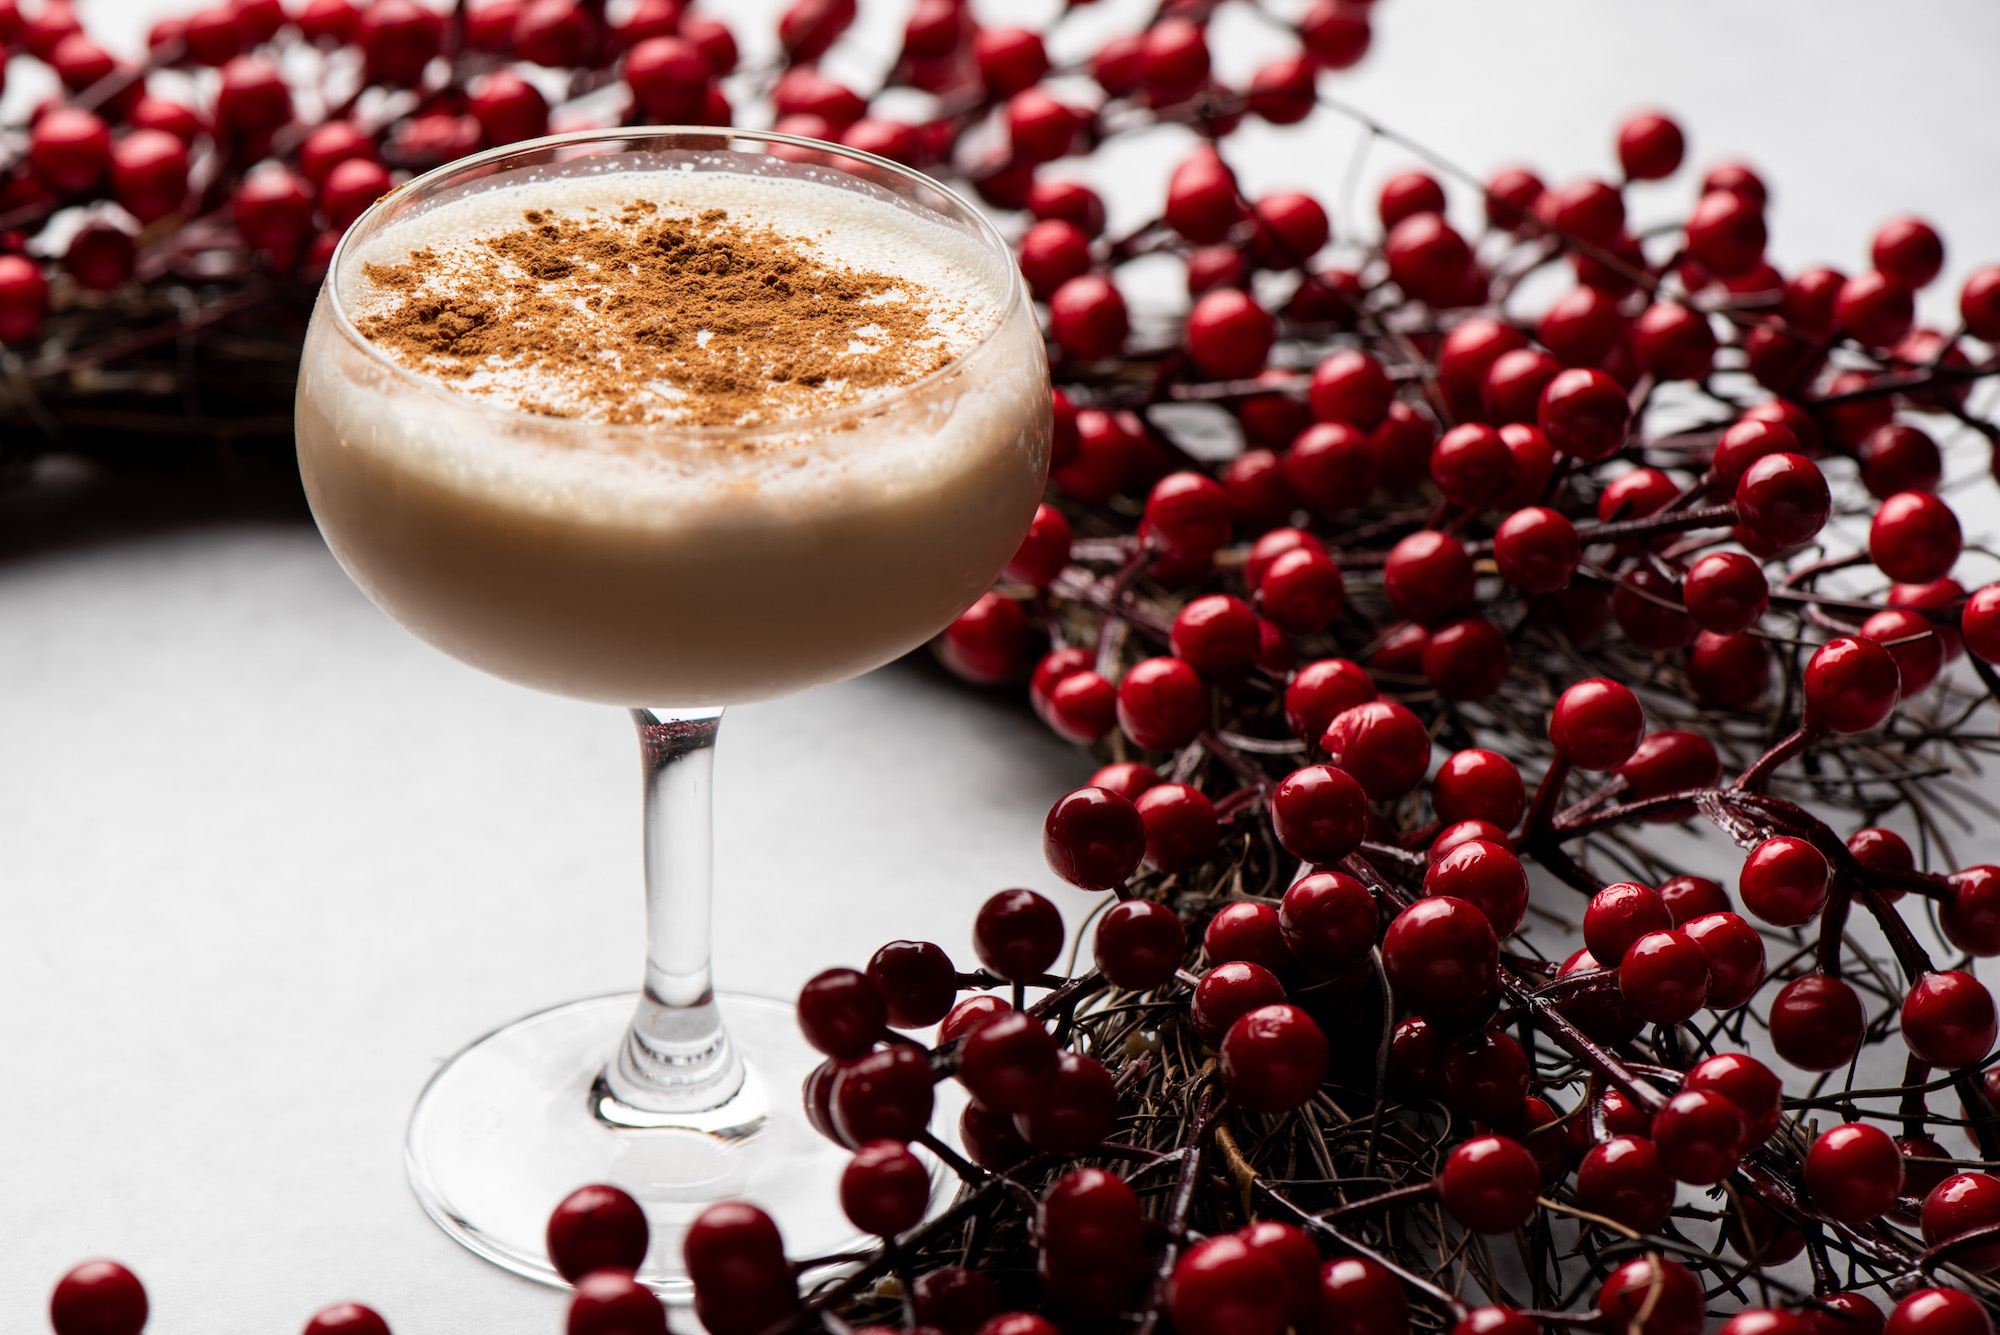 A coupe glass with nutmeg on top of a foamy cocktail for the holidays.